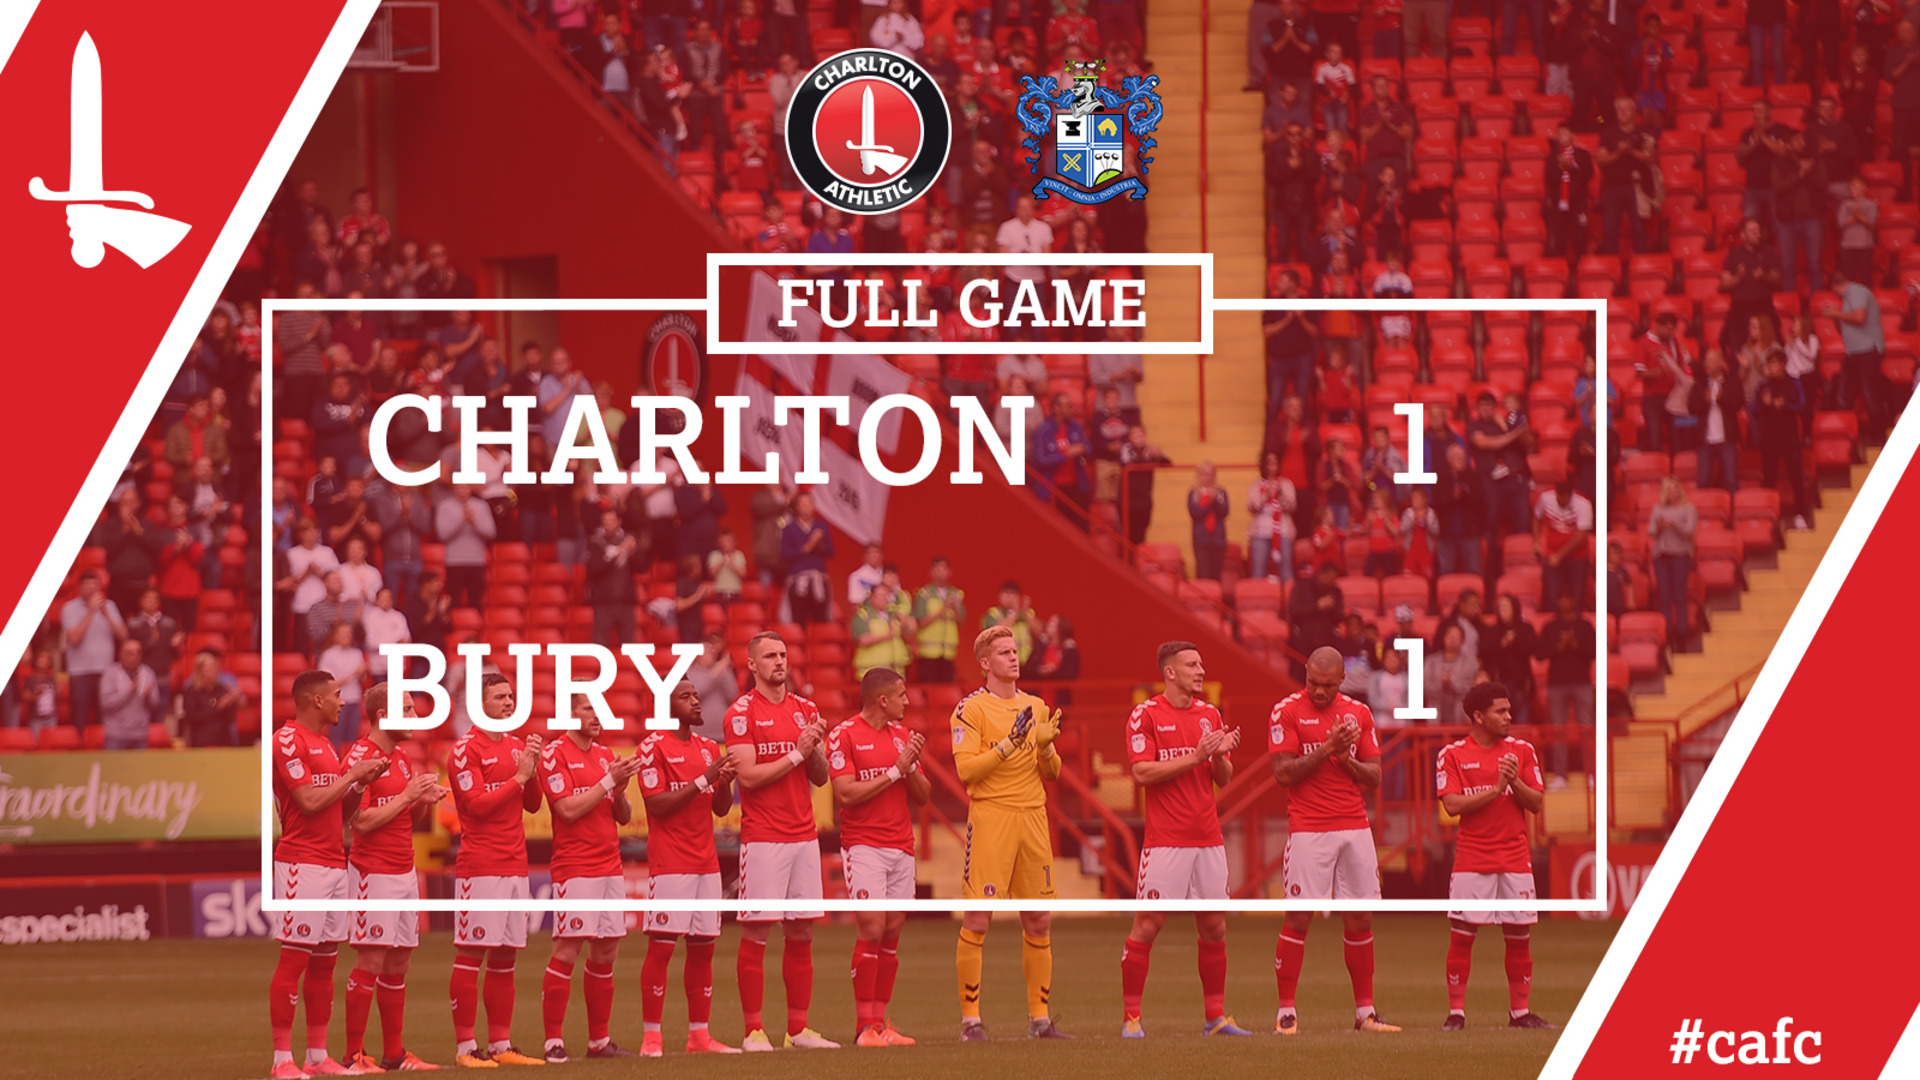 FULL GAME | Charlton 1 Bury 1 (Sept 2017)